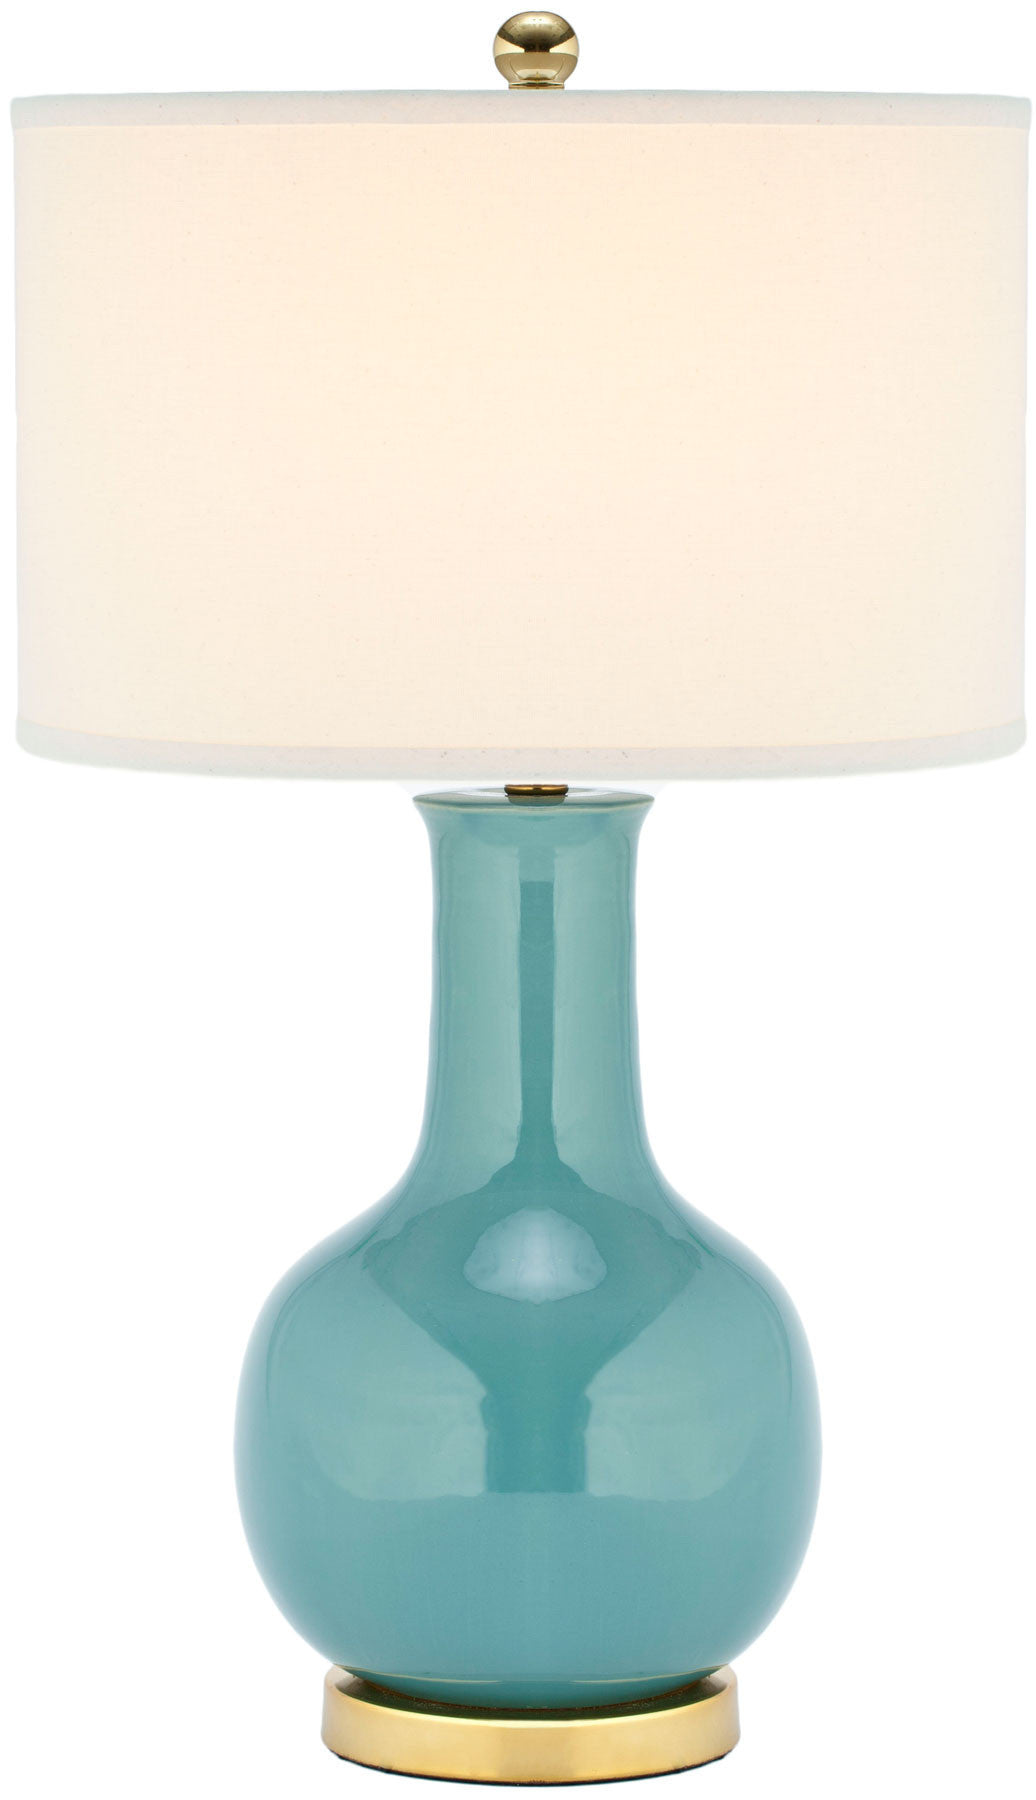 Paris Ceramic Table Lamp In Light Blue With White Shade